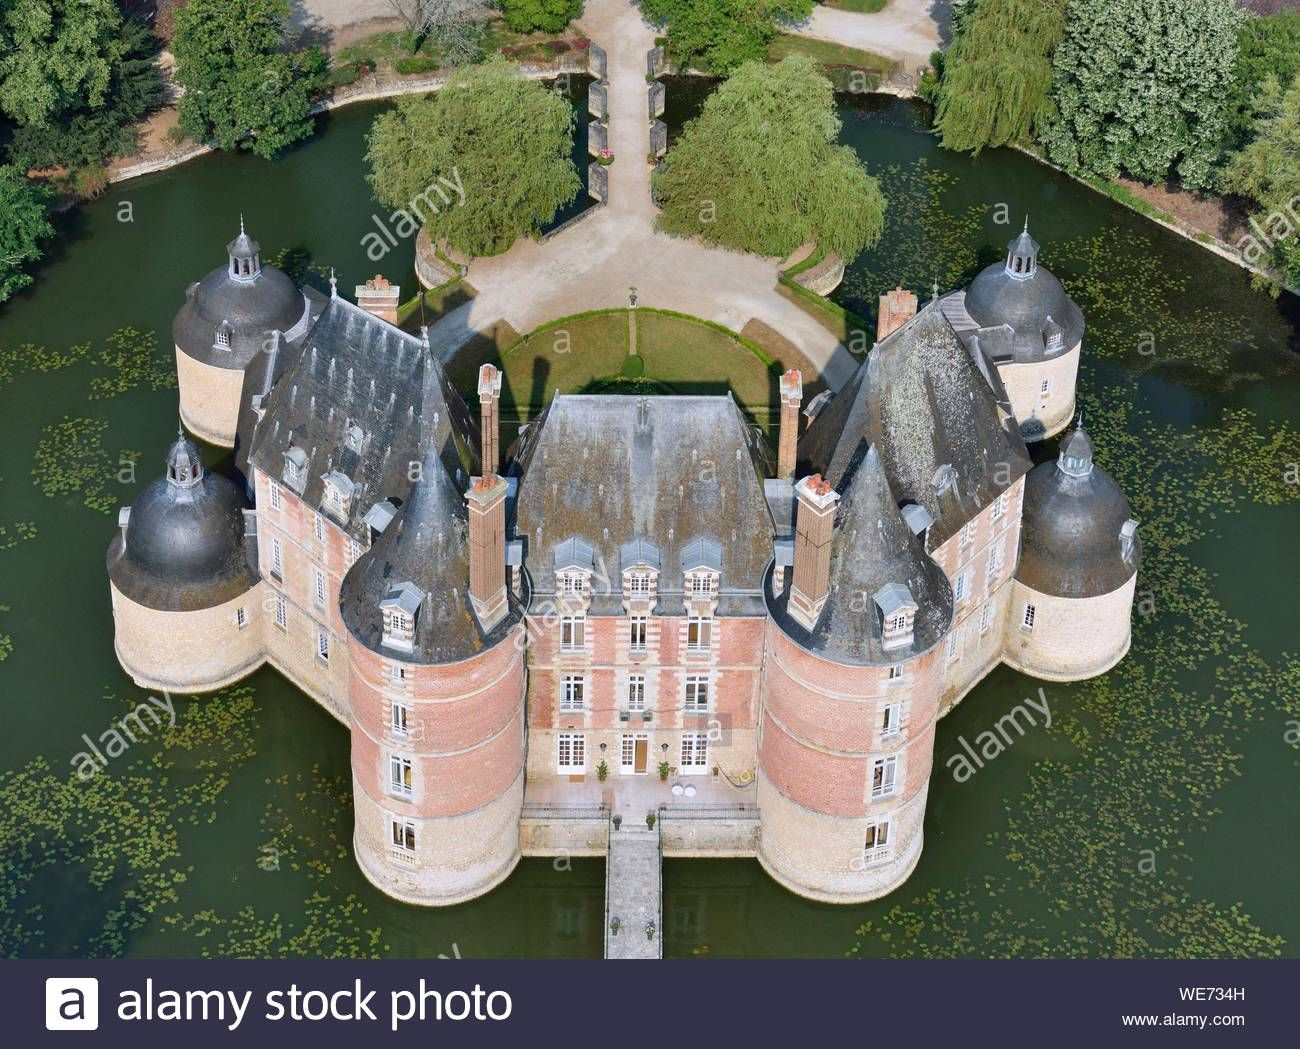 Download This Stock Image France Loiret Chateau Renard Castle Of The Motte Aerial View We734h From Alamy S Library Of Mil In 2020 Castle French Castles Chateau